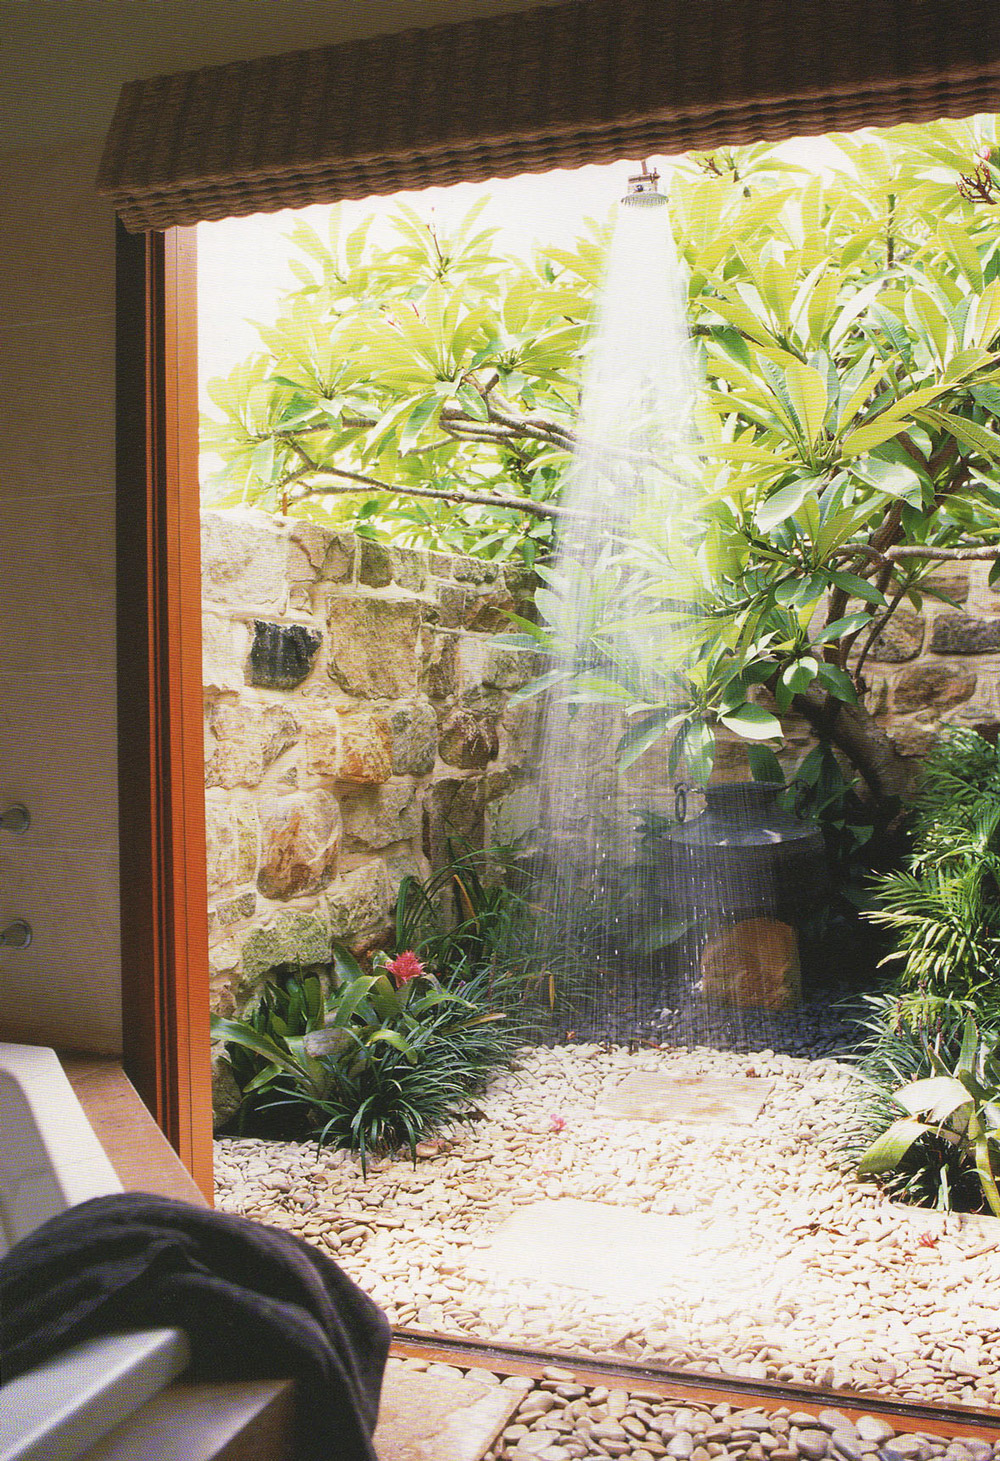 Outdoor Shower Tumblr 50 Stunning Outdoor Shower Spaces That Take You To Urban Paradise